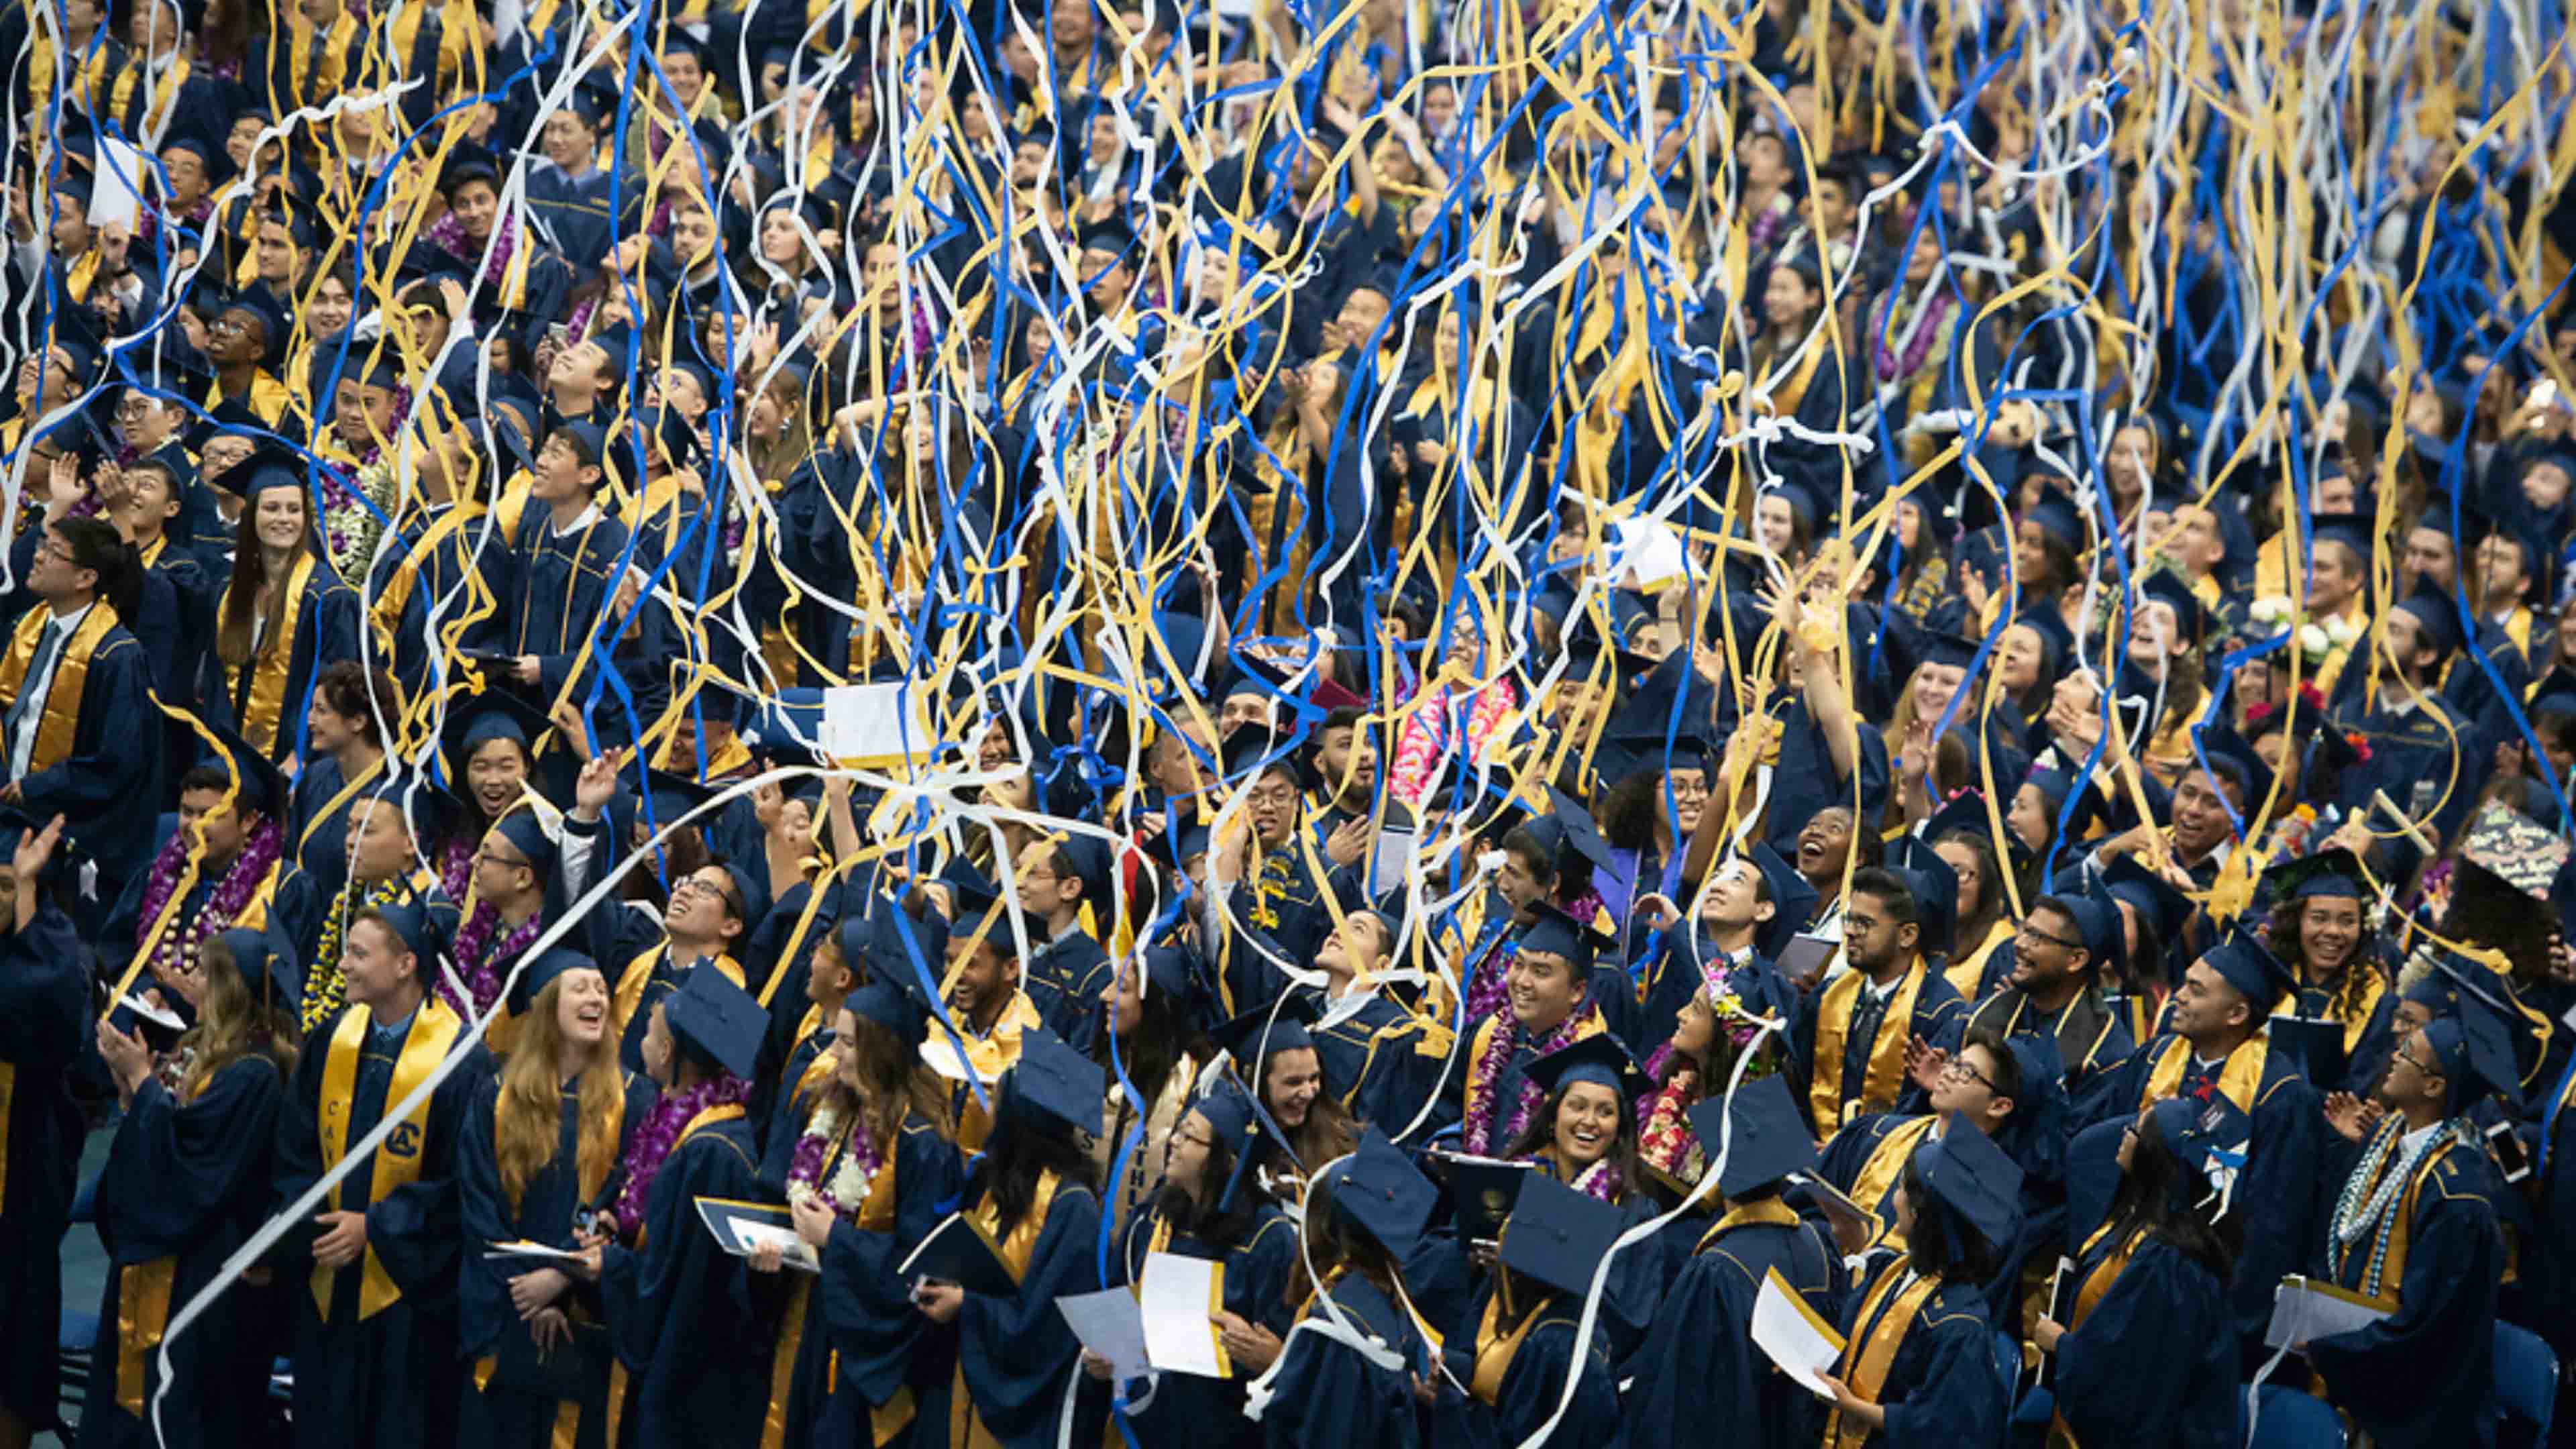 Spring commencement speakers include CA Surgeon General, College District Chancellor, NASA Astronaut